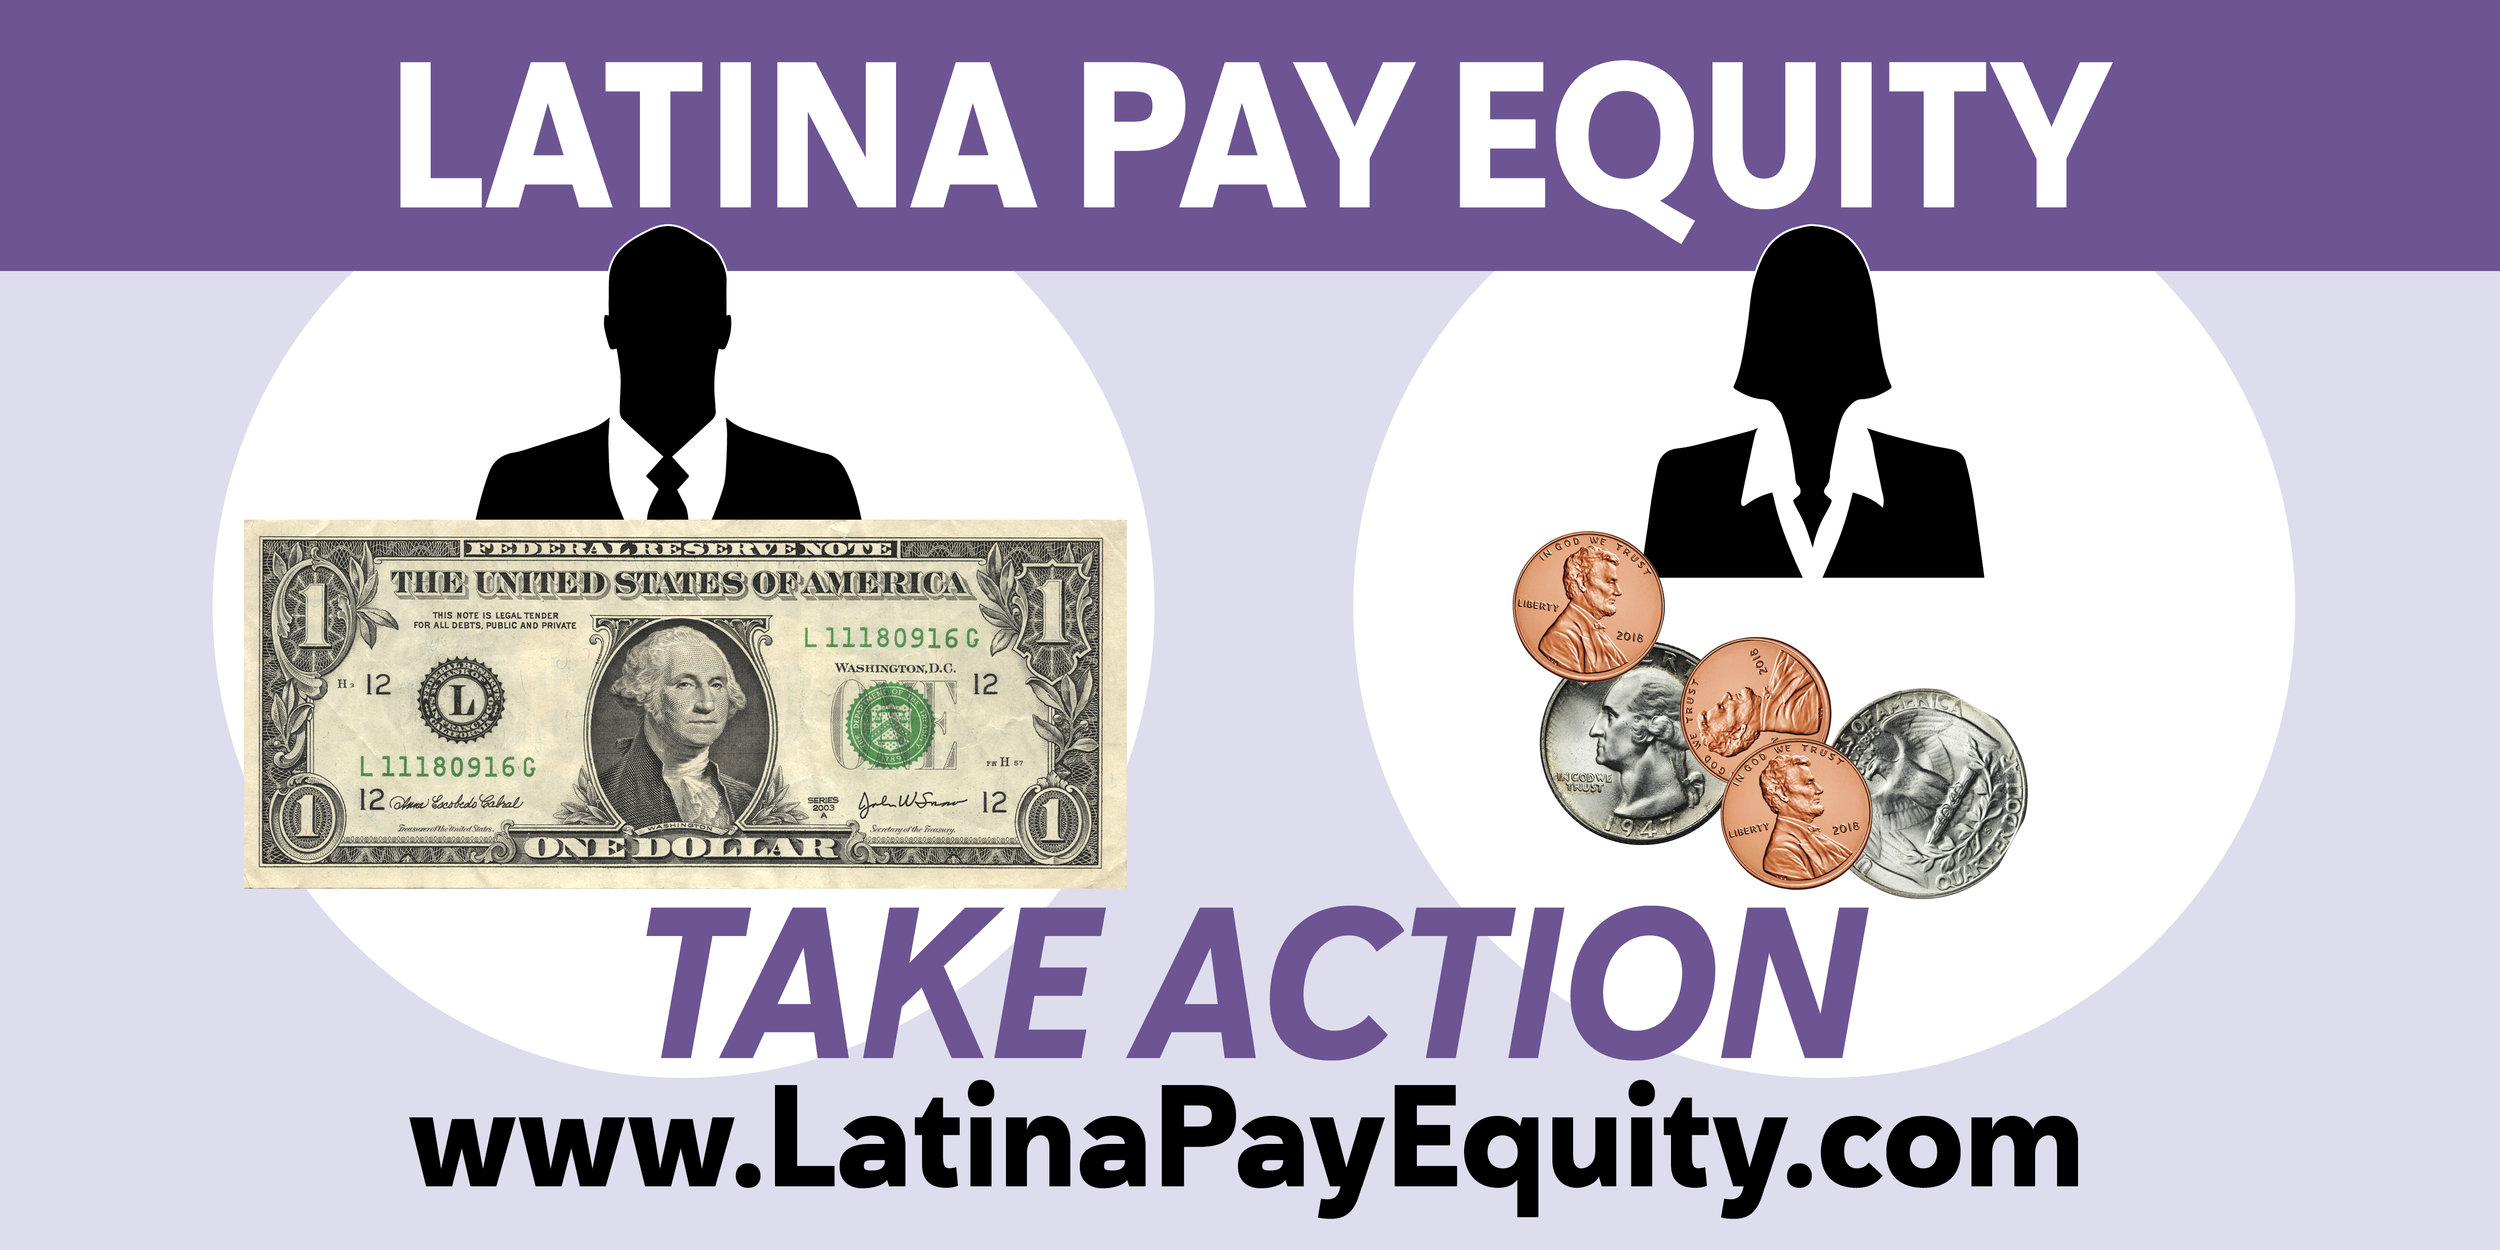 Pay Equity for Latinas